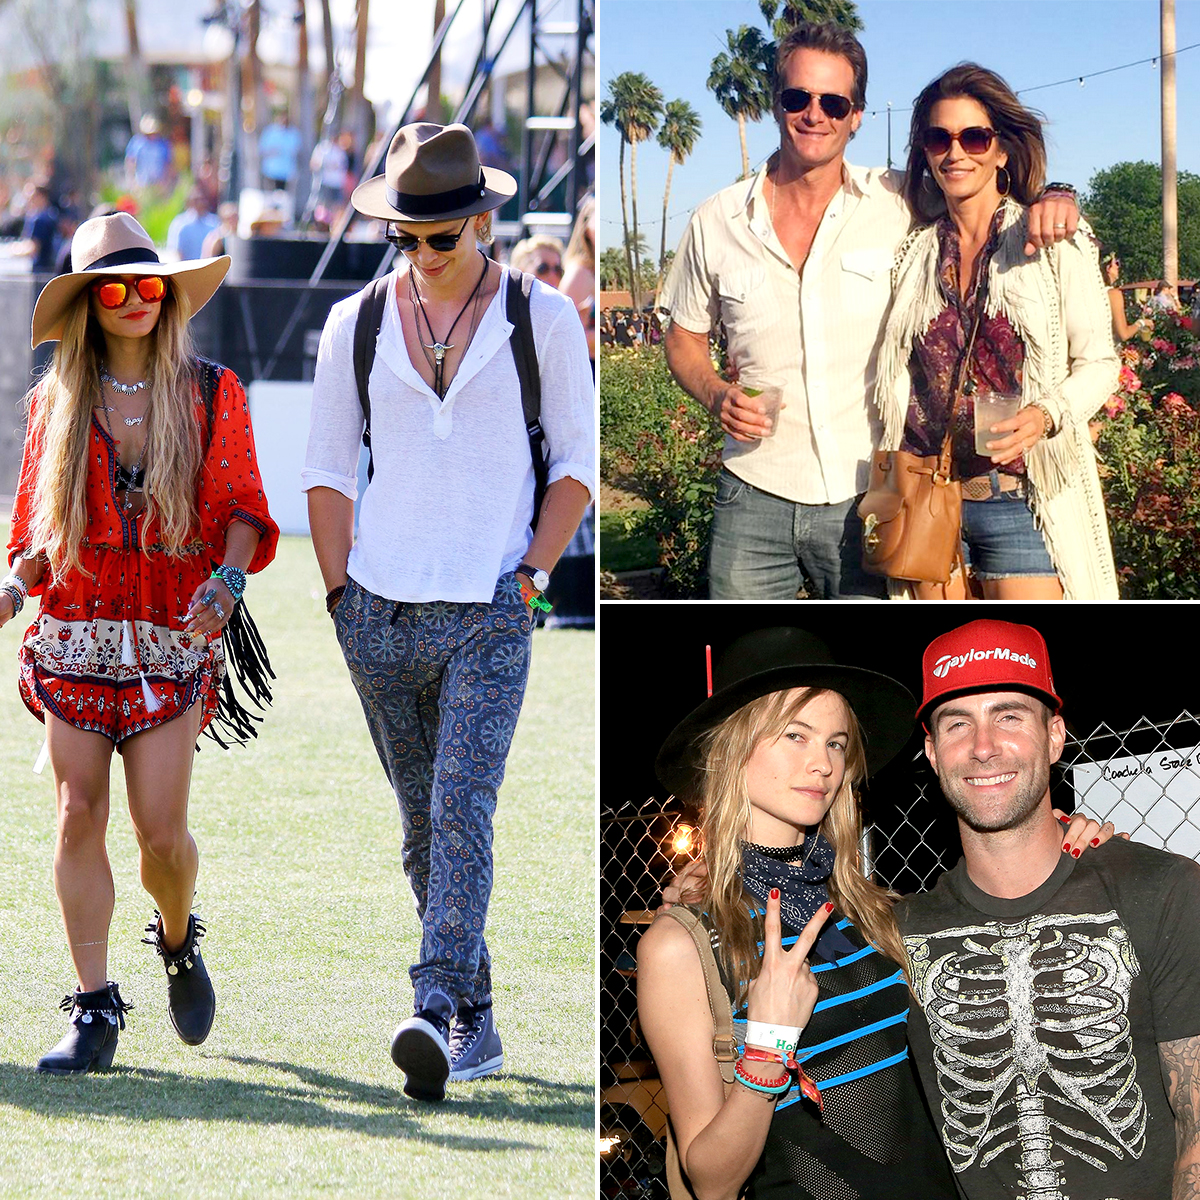 coachella-couples - There are only three things that are certain in life: death, taxes and celebrities coupling up at the annual Coachella Valley Music and Arts Festival. Since the ever-growing multi-weekend event was cofounded in 1999, A-list couples such as Adam Levine and Behati Prinsloo , Katy Perry and Orlando Bloom , and Rande Gerber and Cindy Crawford have headed to the deserts of Indio, California, to bask in the sunlight and take in good music from some of the biggest names in pop, rock, rap, electronic and indie music, among other genres.